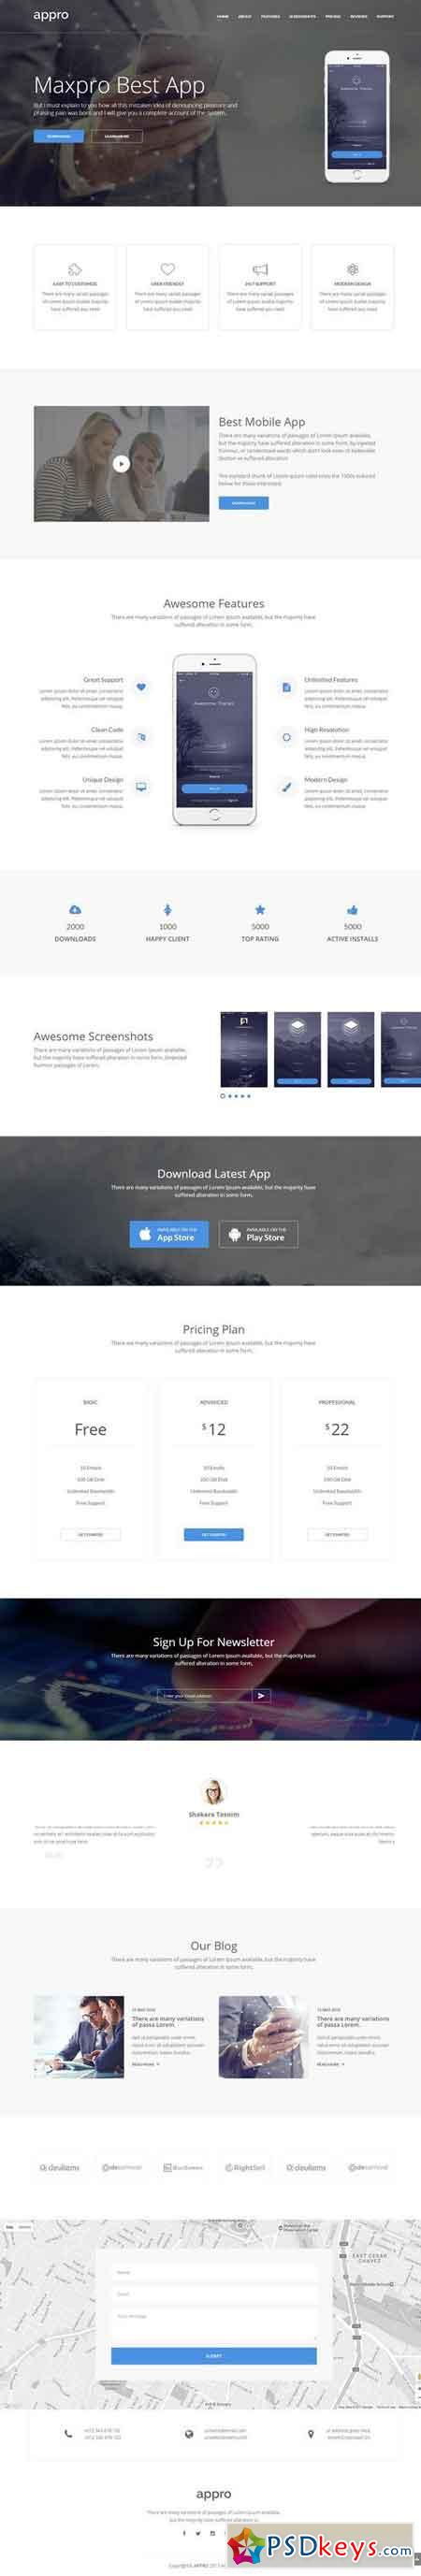 Appro – Multipurpose HTML Template 1999086